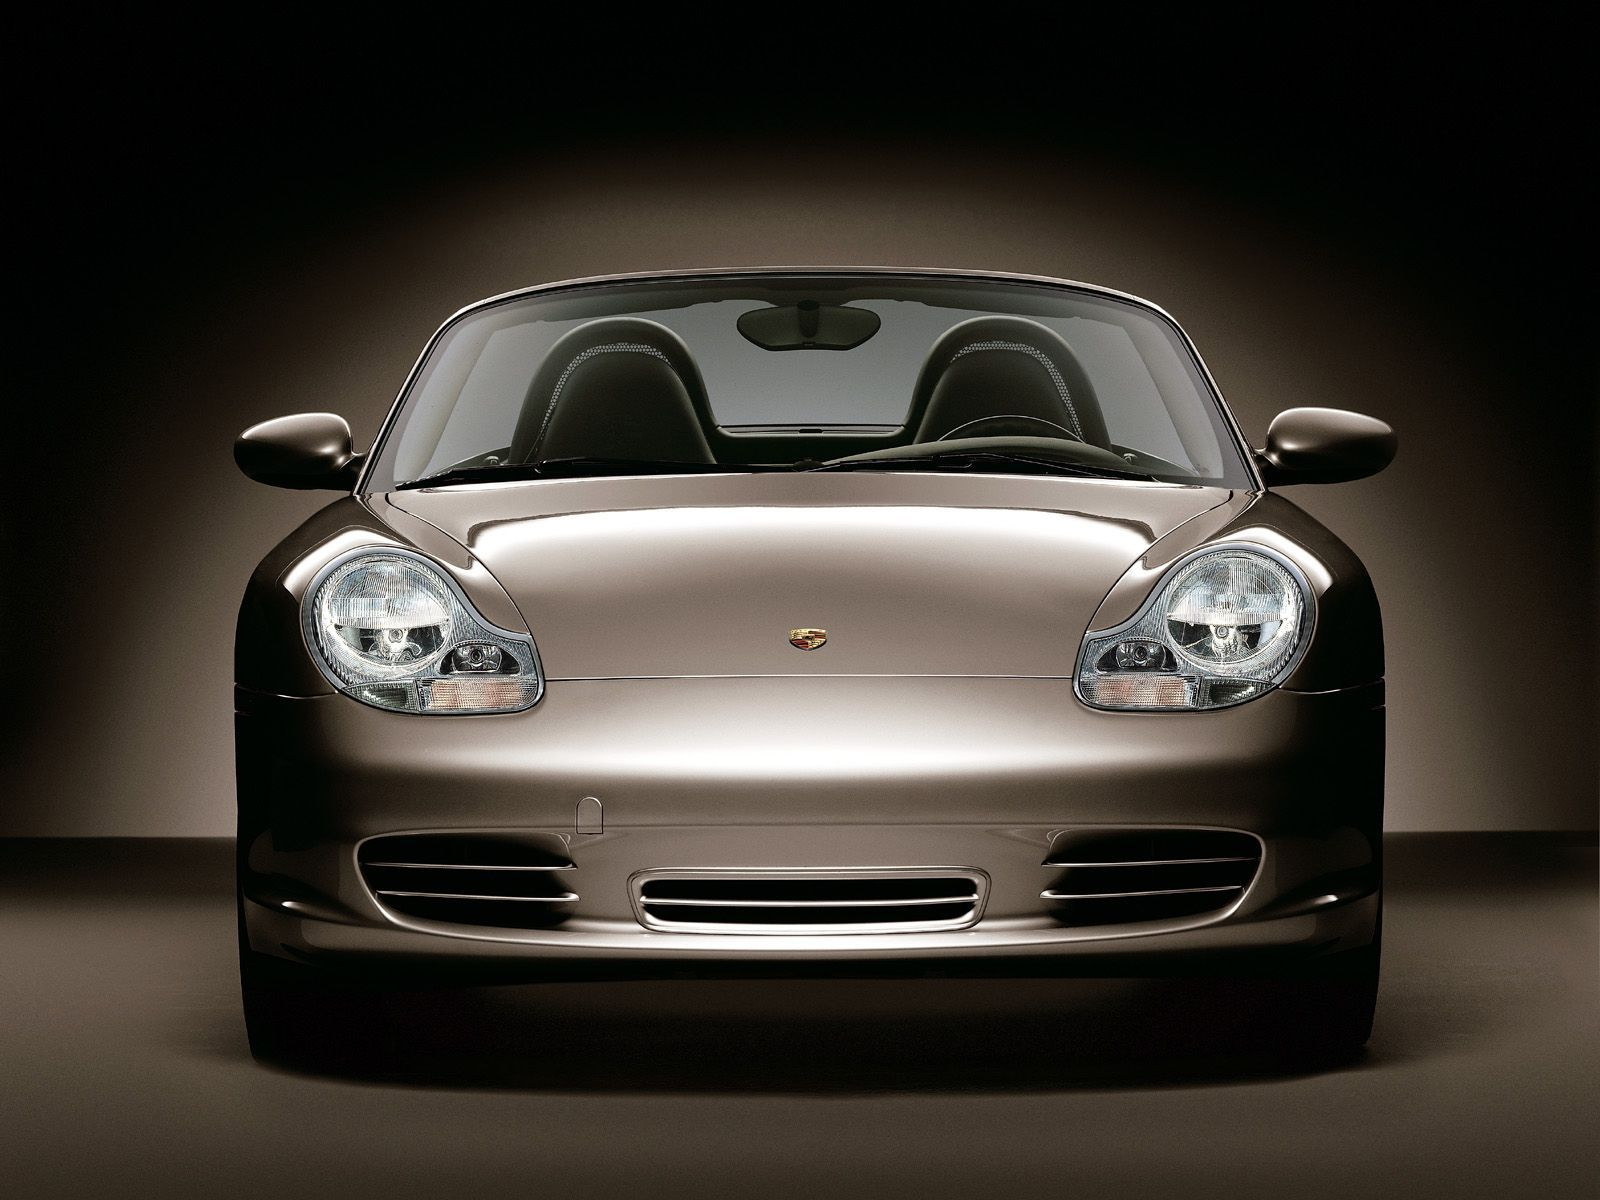 porsche boxster 986 porsche pinterest porsche. Black Bedroom Furniture Sets. Home Design Ideas